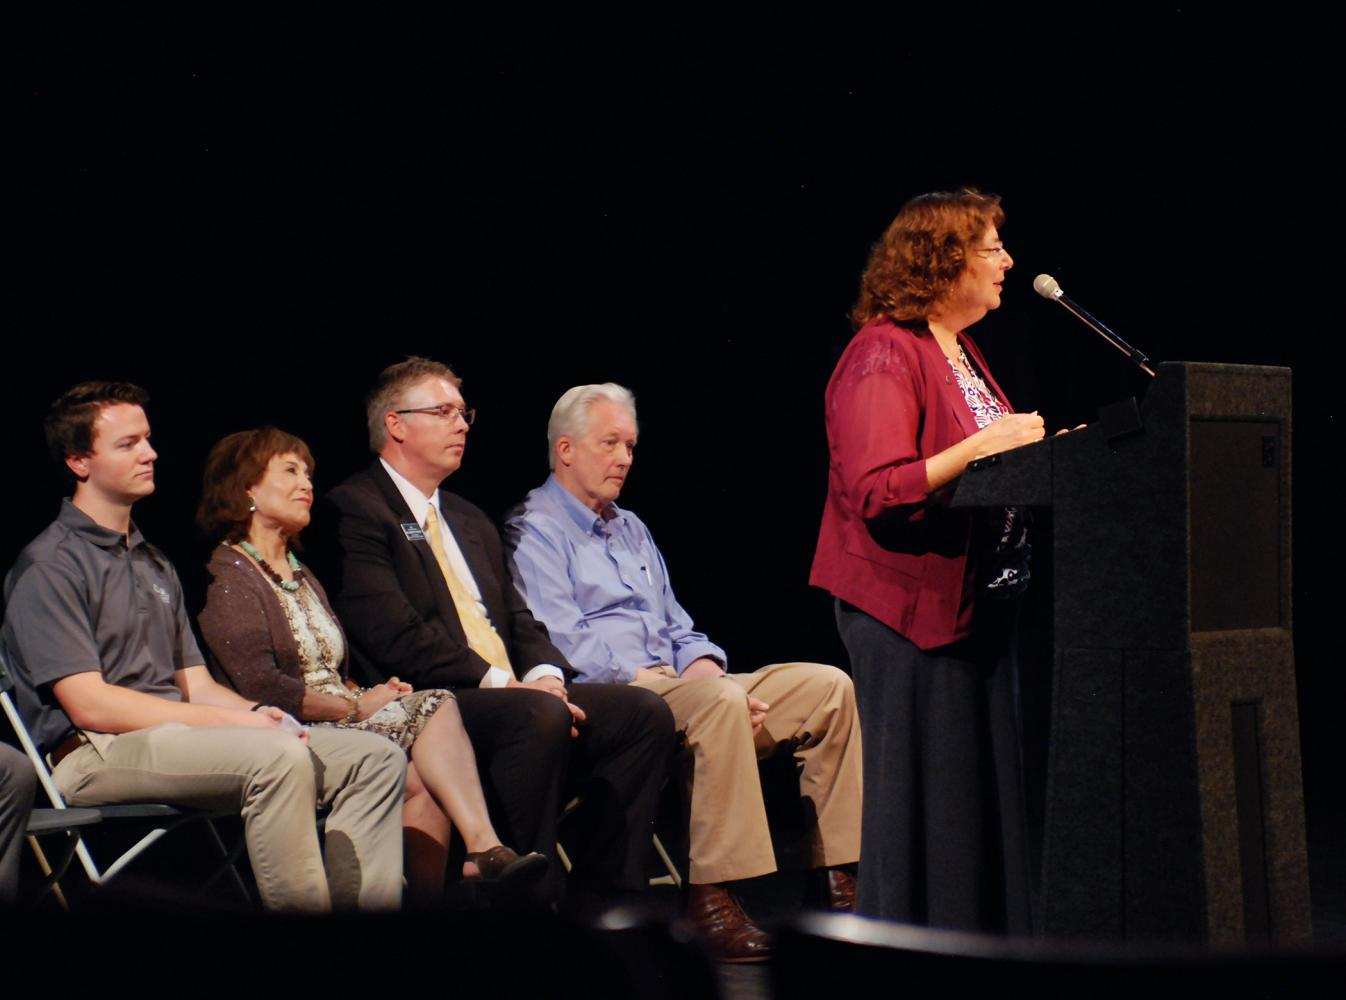 Erica Austin, Vice Porovost for Academic Affairs, relays a speech with the audience regarding a new campus location for Spokane Falls Community College at the WSU Pullman campus on Thursday September 7th in the Wadleigh Theatre.